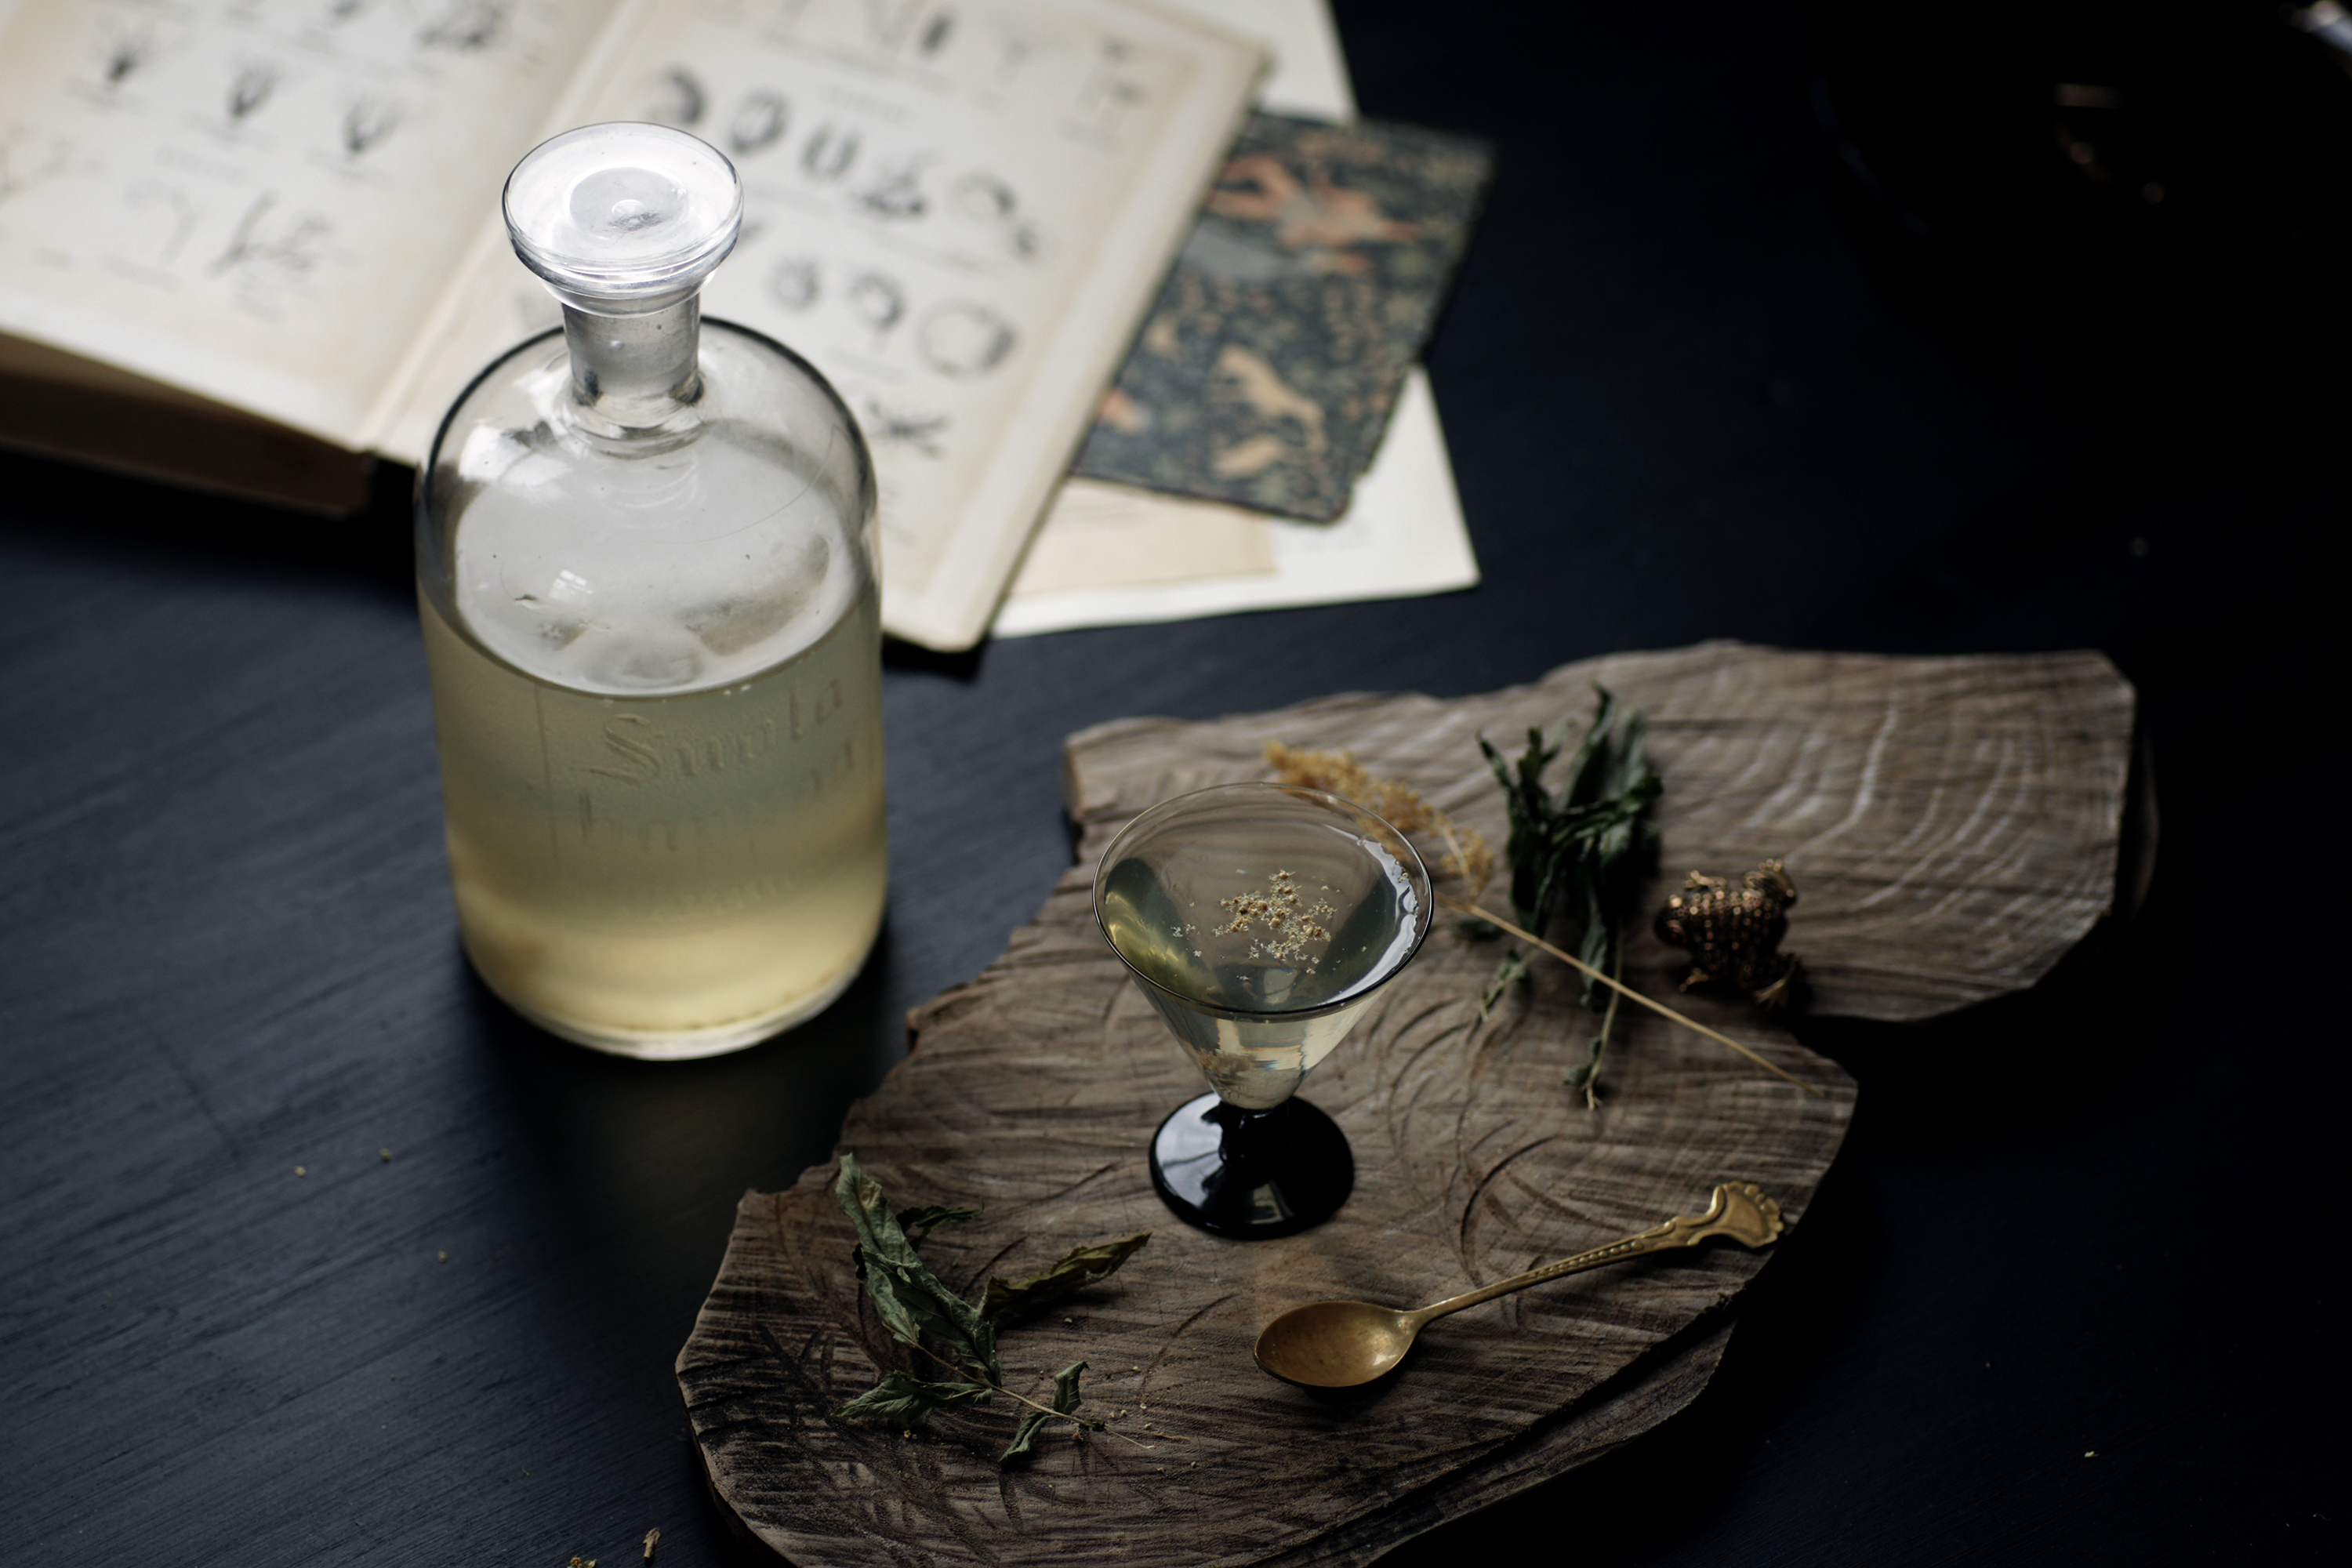 Botanical mead in old glass bottle and small glass